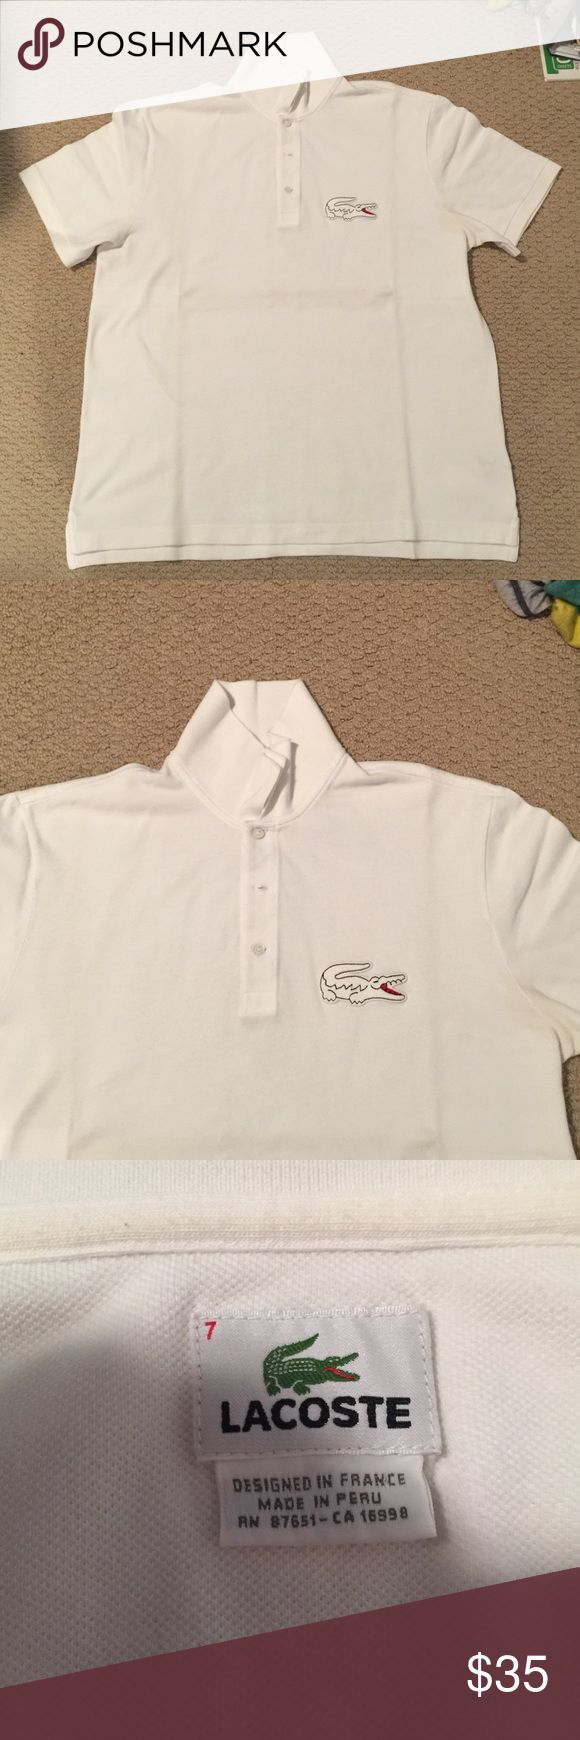 MENS White Lacoste Polo Shirt, Size 7 (XL) Like-new, white Lacoste short sleeve polo shirt with 3 buttons on the top and large white alligator polo. Worn only a few times. Purchased under 2 year ago at Bloomingdales m. Size 7, which is an XL. Enjoy it!!! Purchase 2 or more items of mine and receive 15% off! Lacoste Shirts Polos